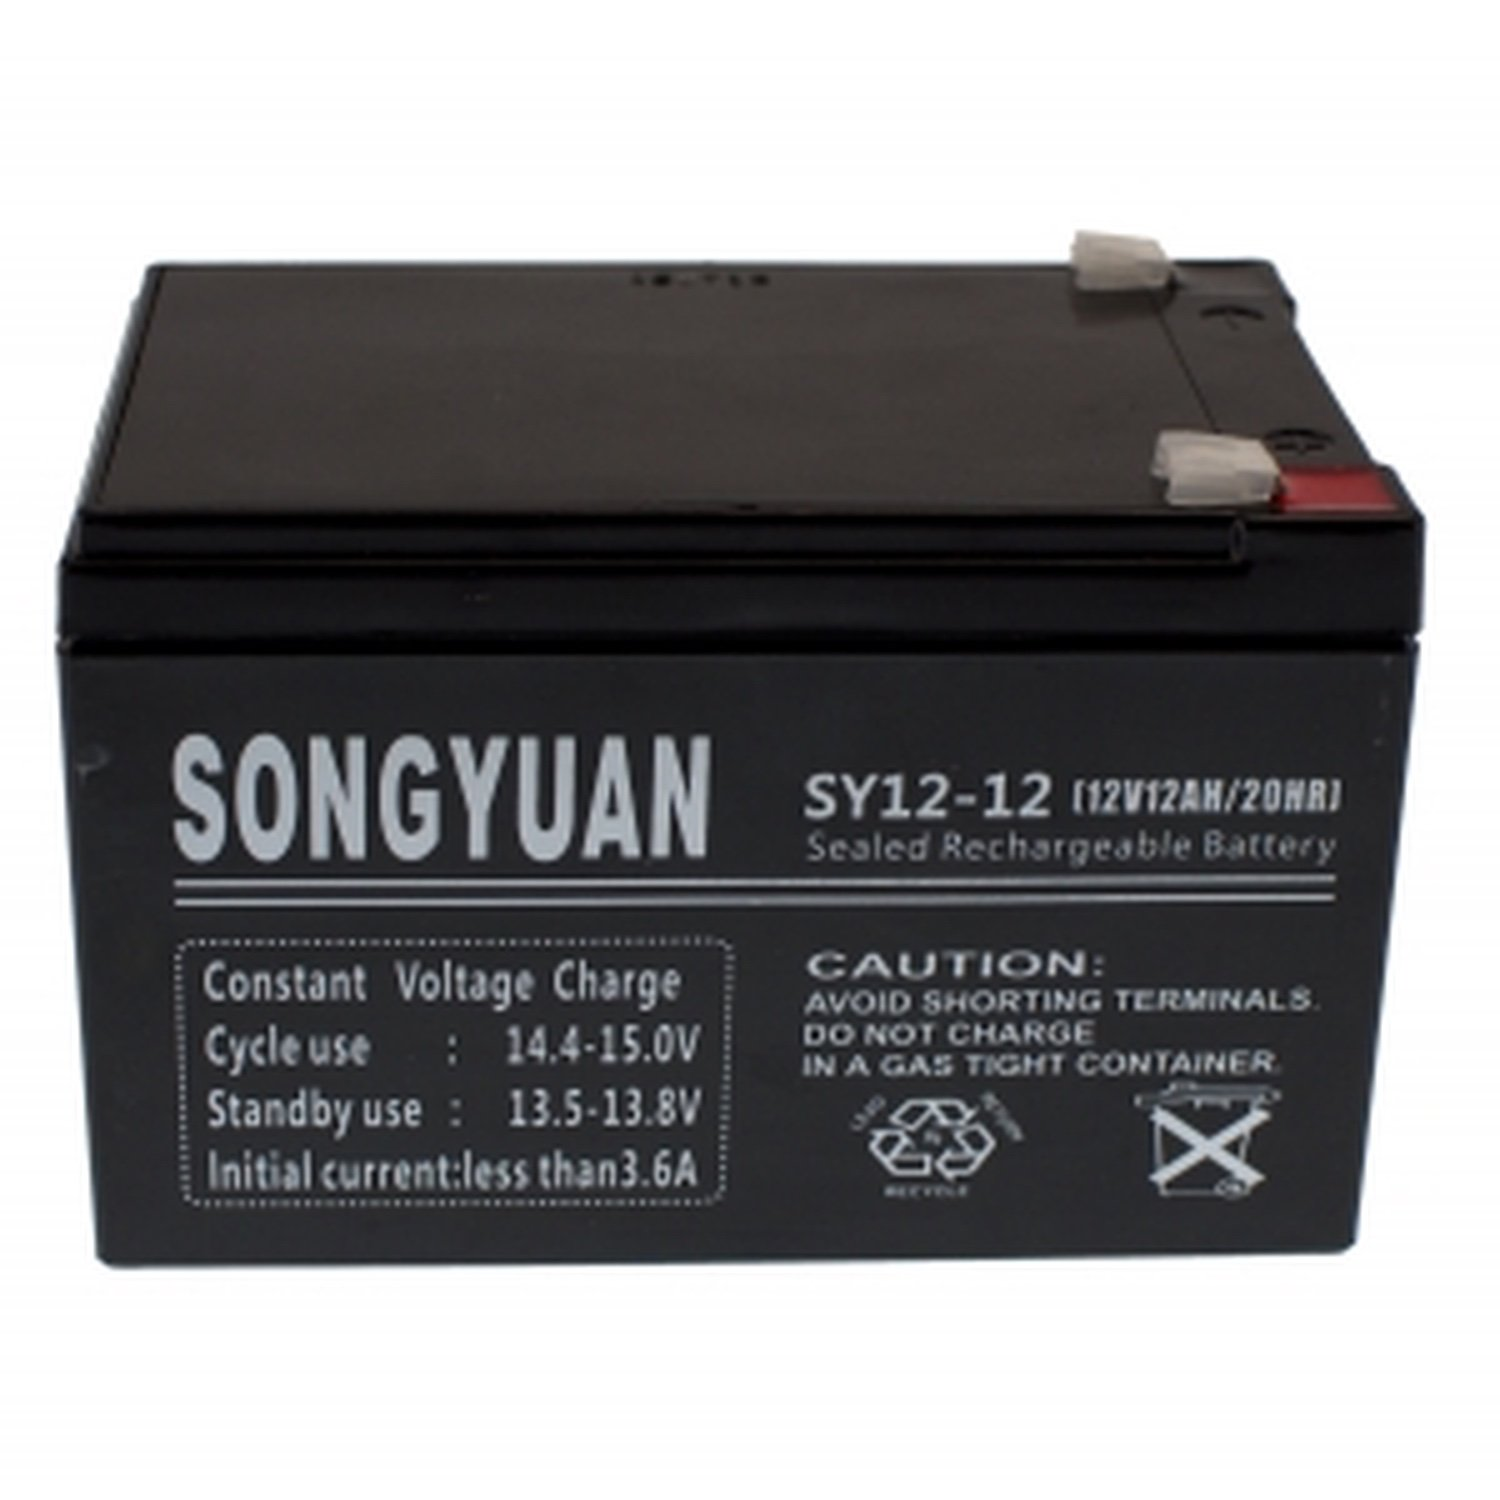 Lead Battery Sealed Rechargeable 12 V/12Ah Ref Sy12-12 Np12-12 Fg21202 Lc-Ra1212Pg1 Np12-12